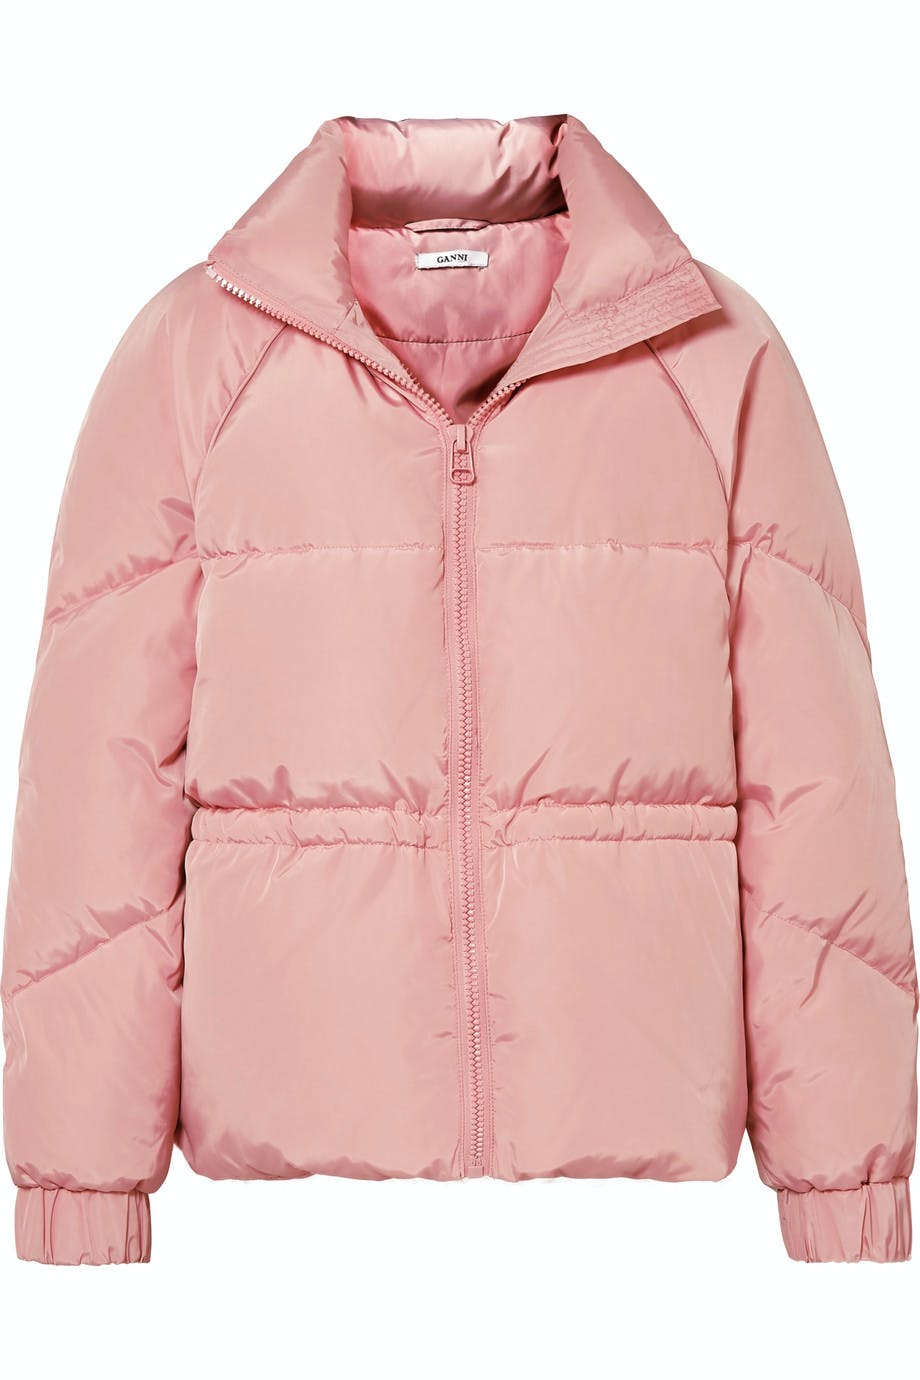 2065571a Puffer jackets: Fashion month just made this jacket cool again